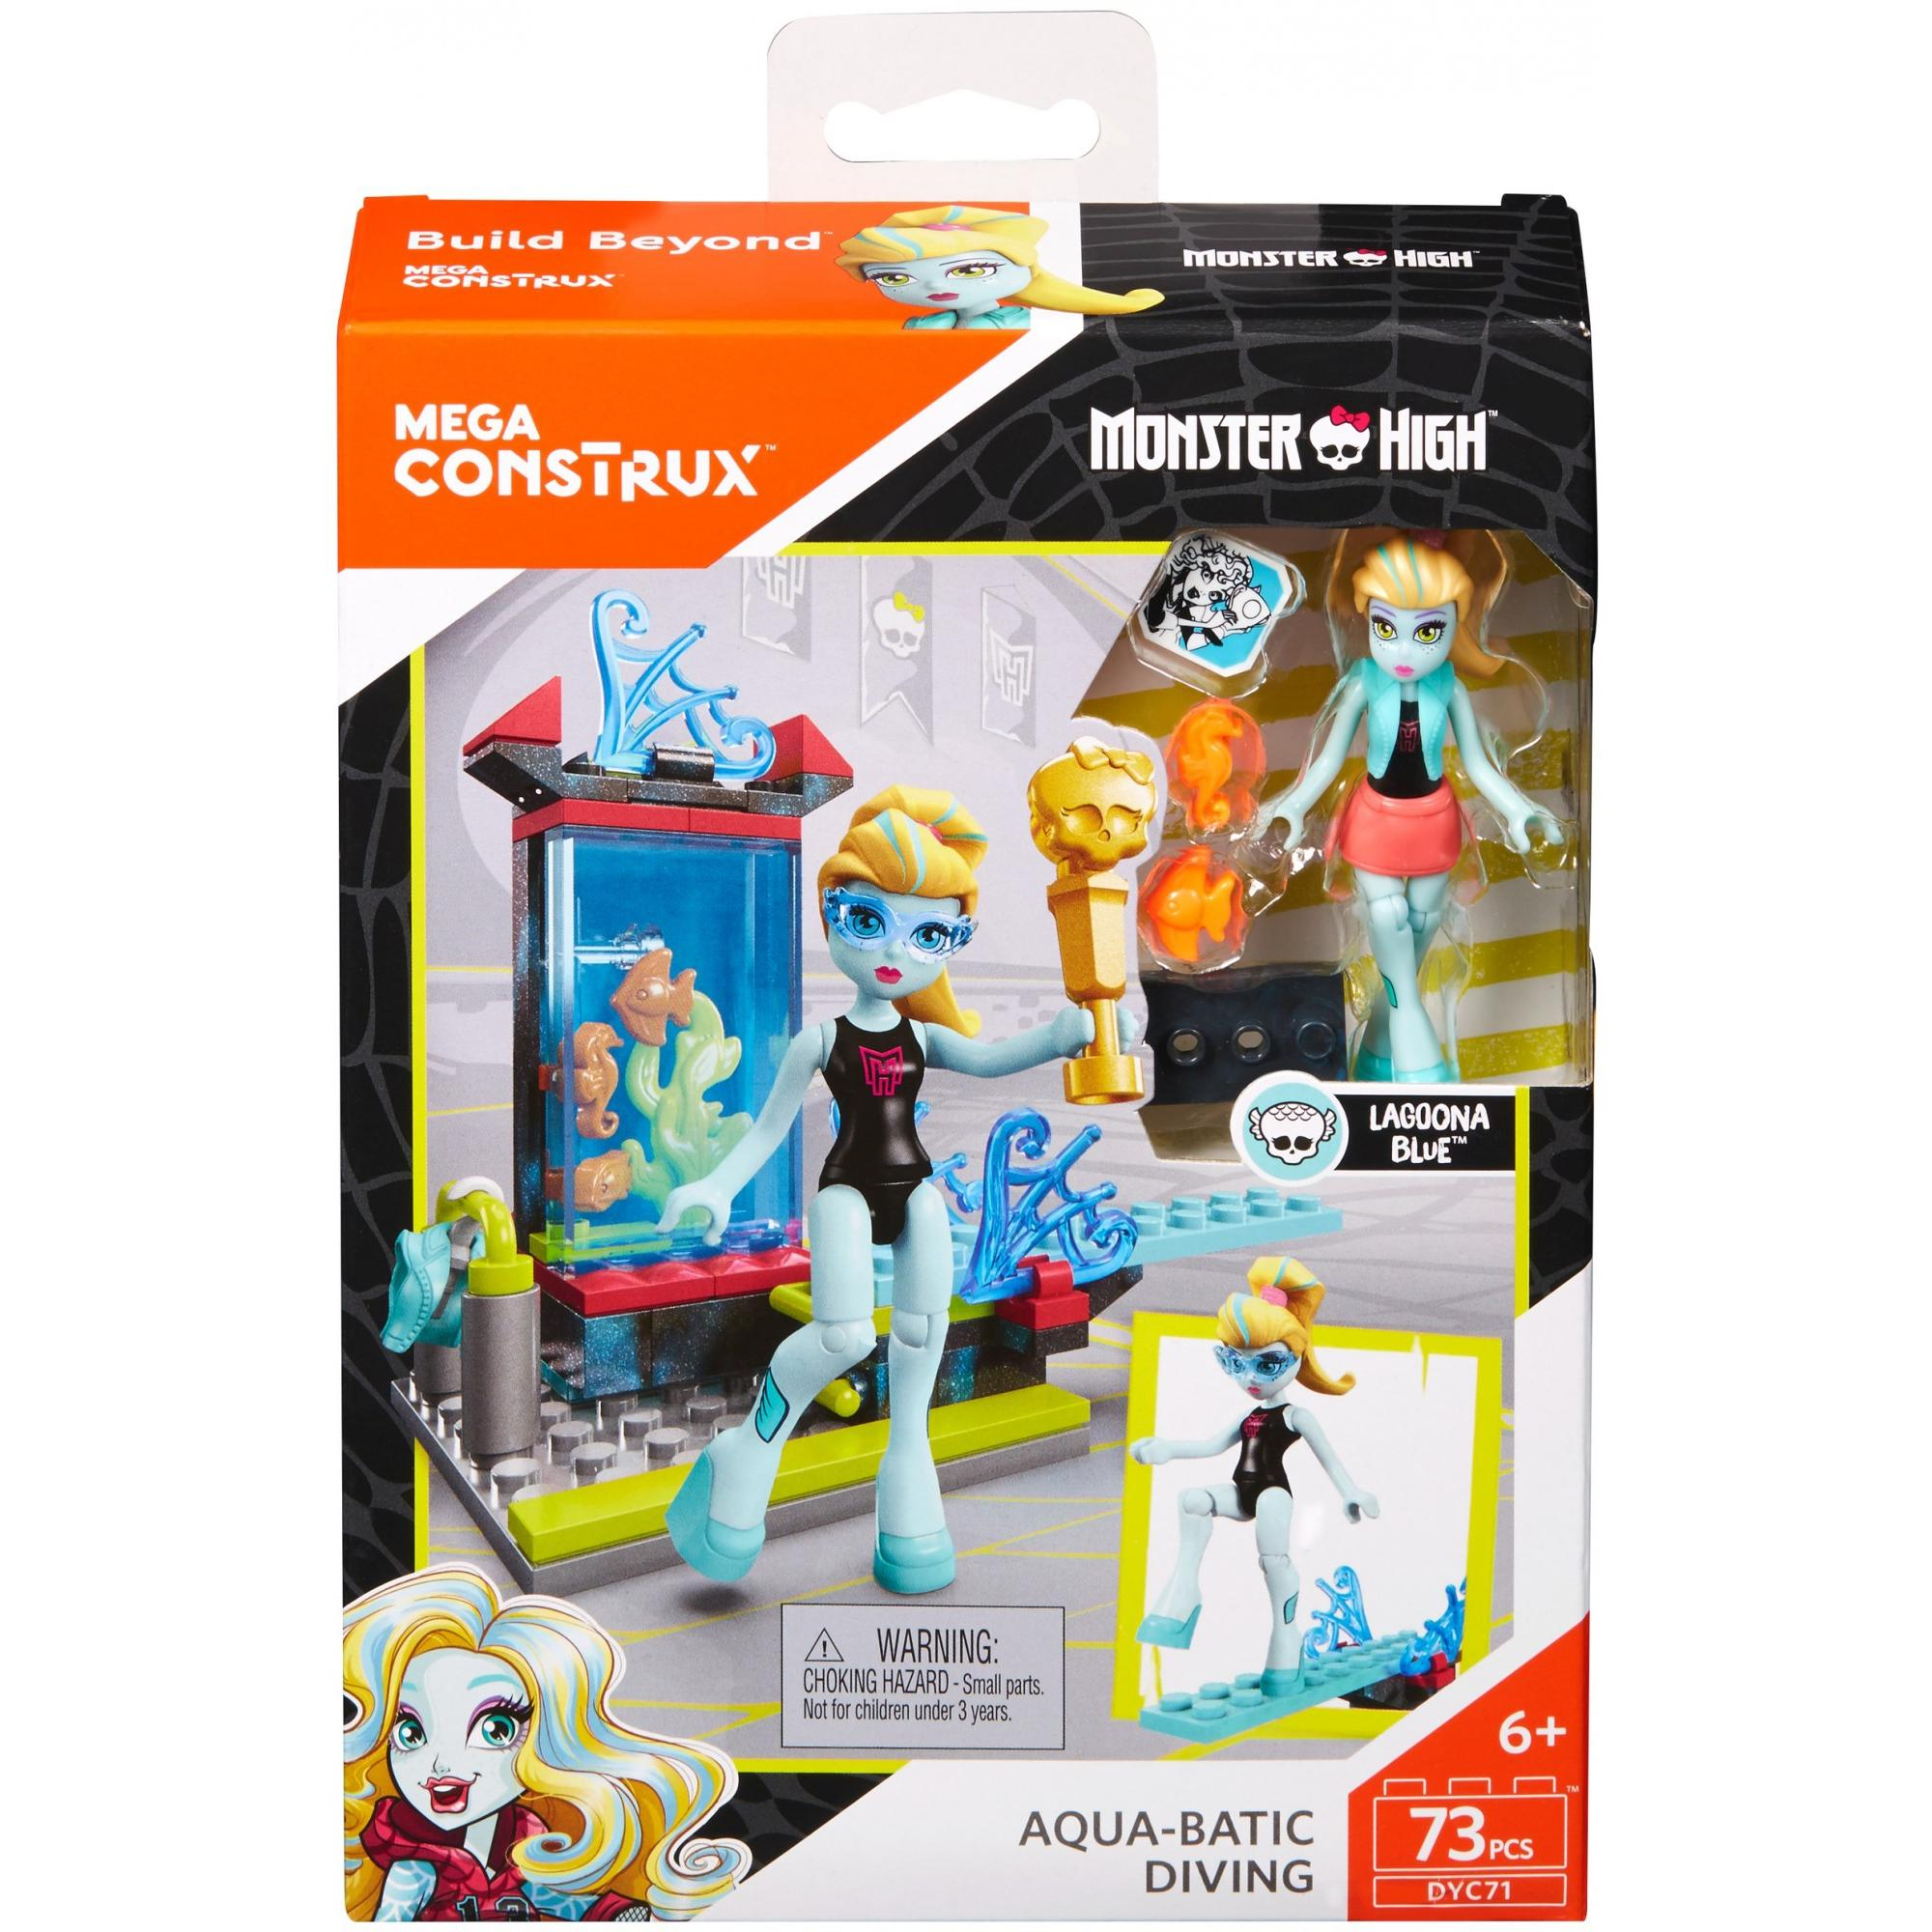 Mega Construx Monster High Creeperific Lagoona's Diving Competition Building Set